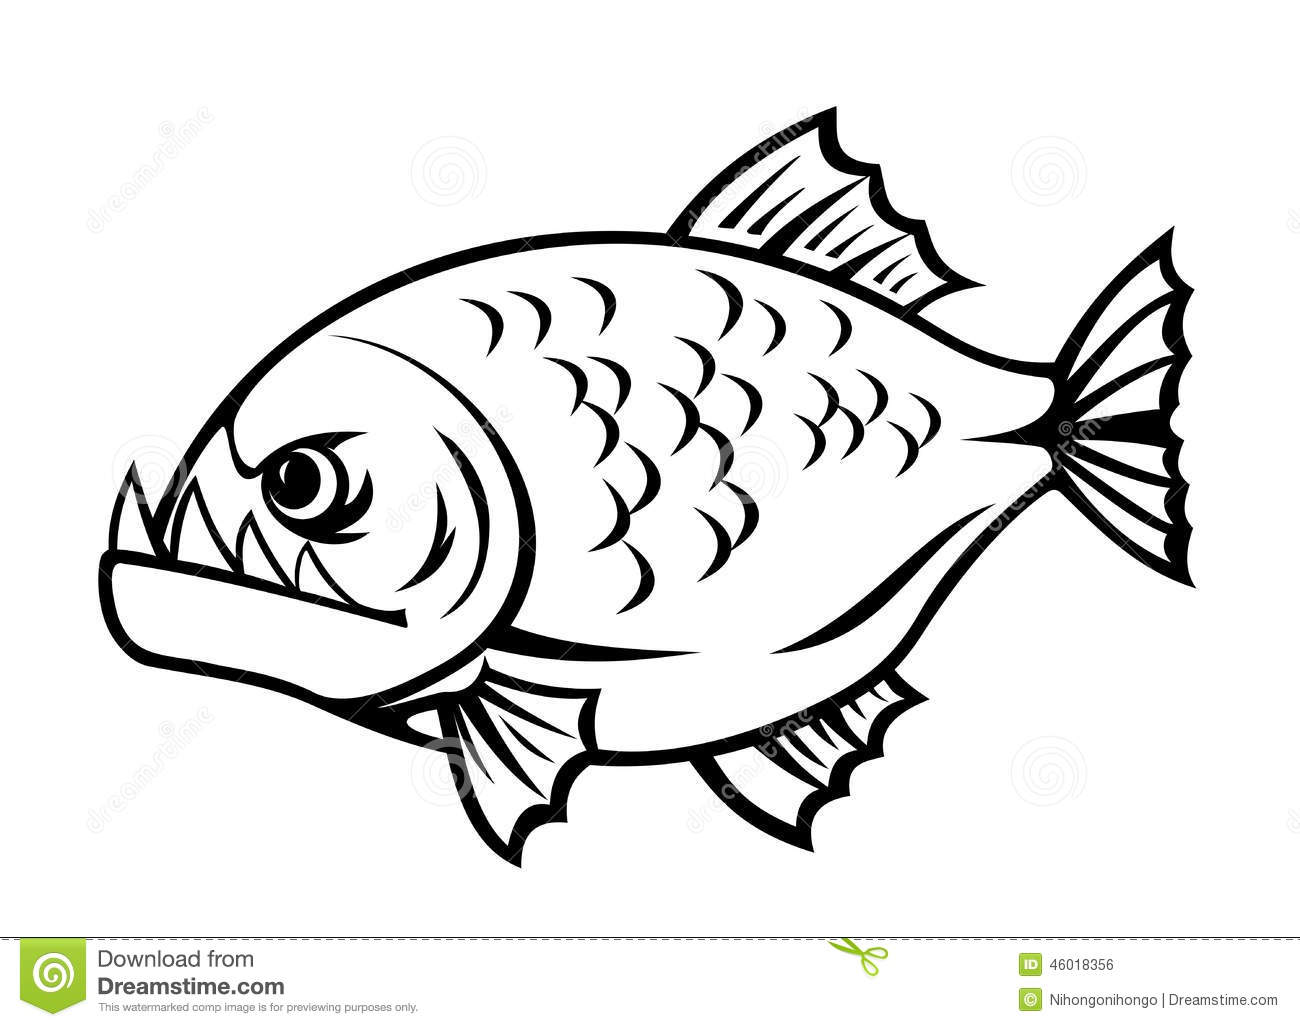 Piranha clipart angry #8 clipart Piranha Download Download